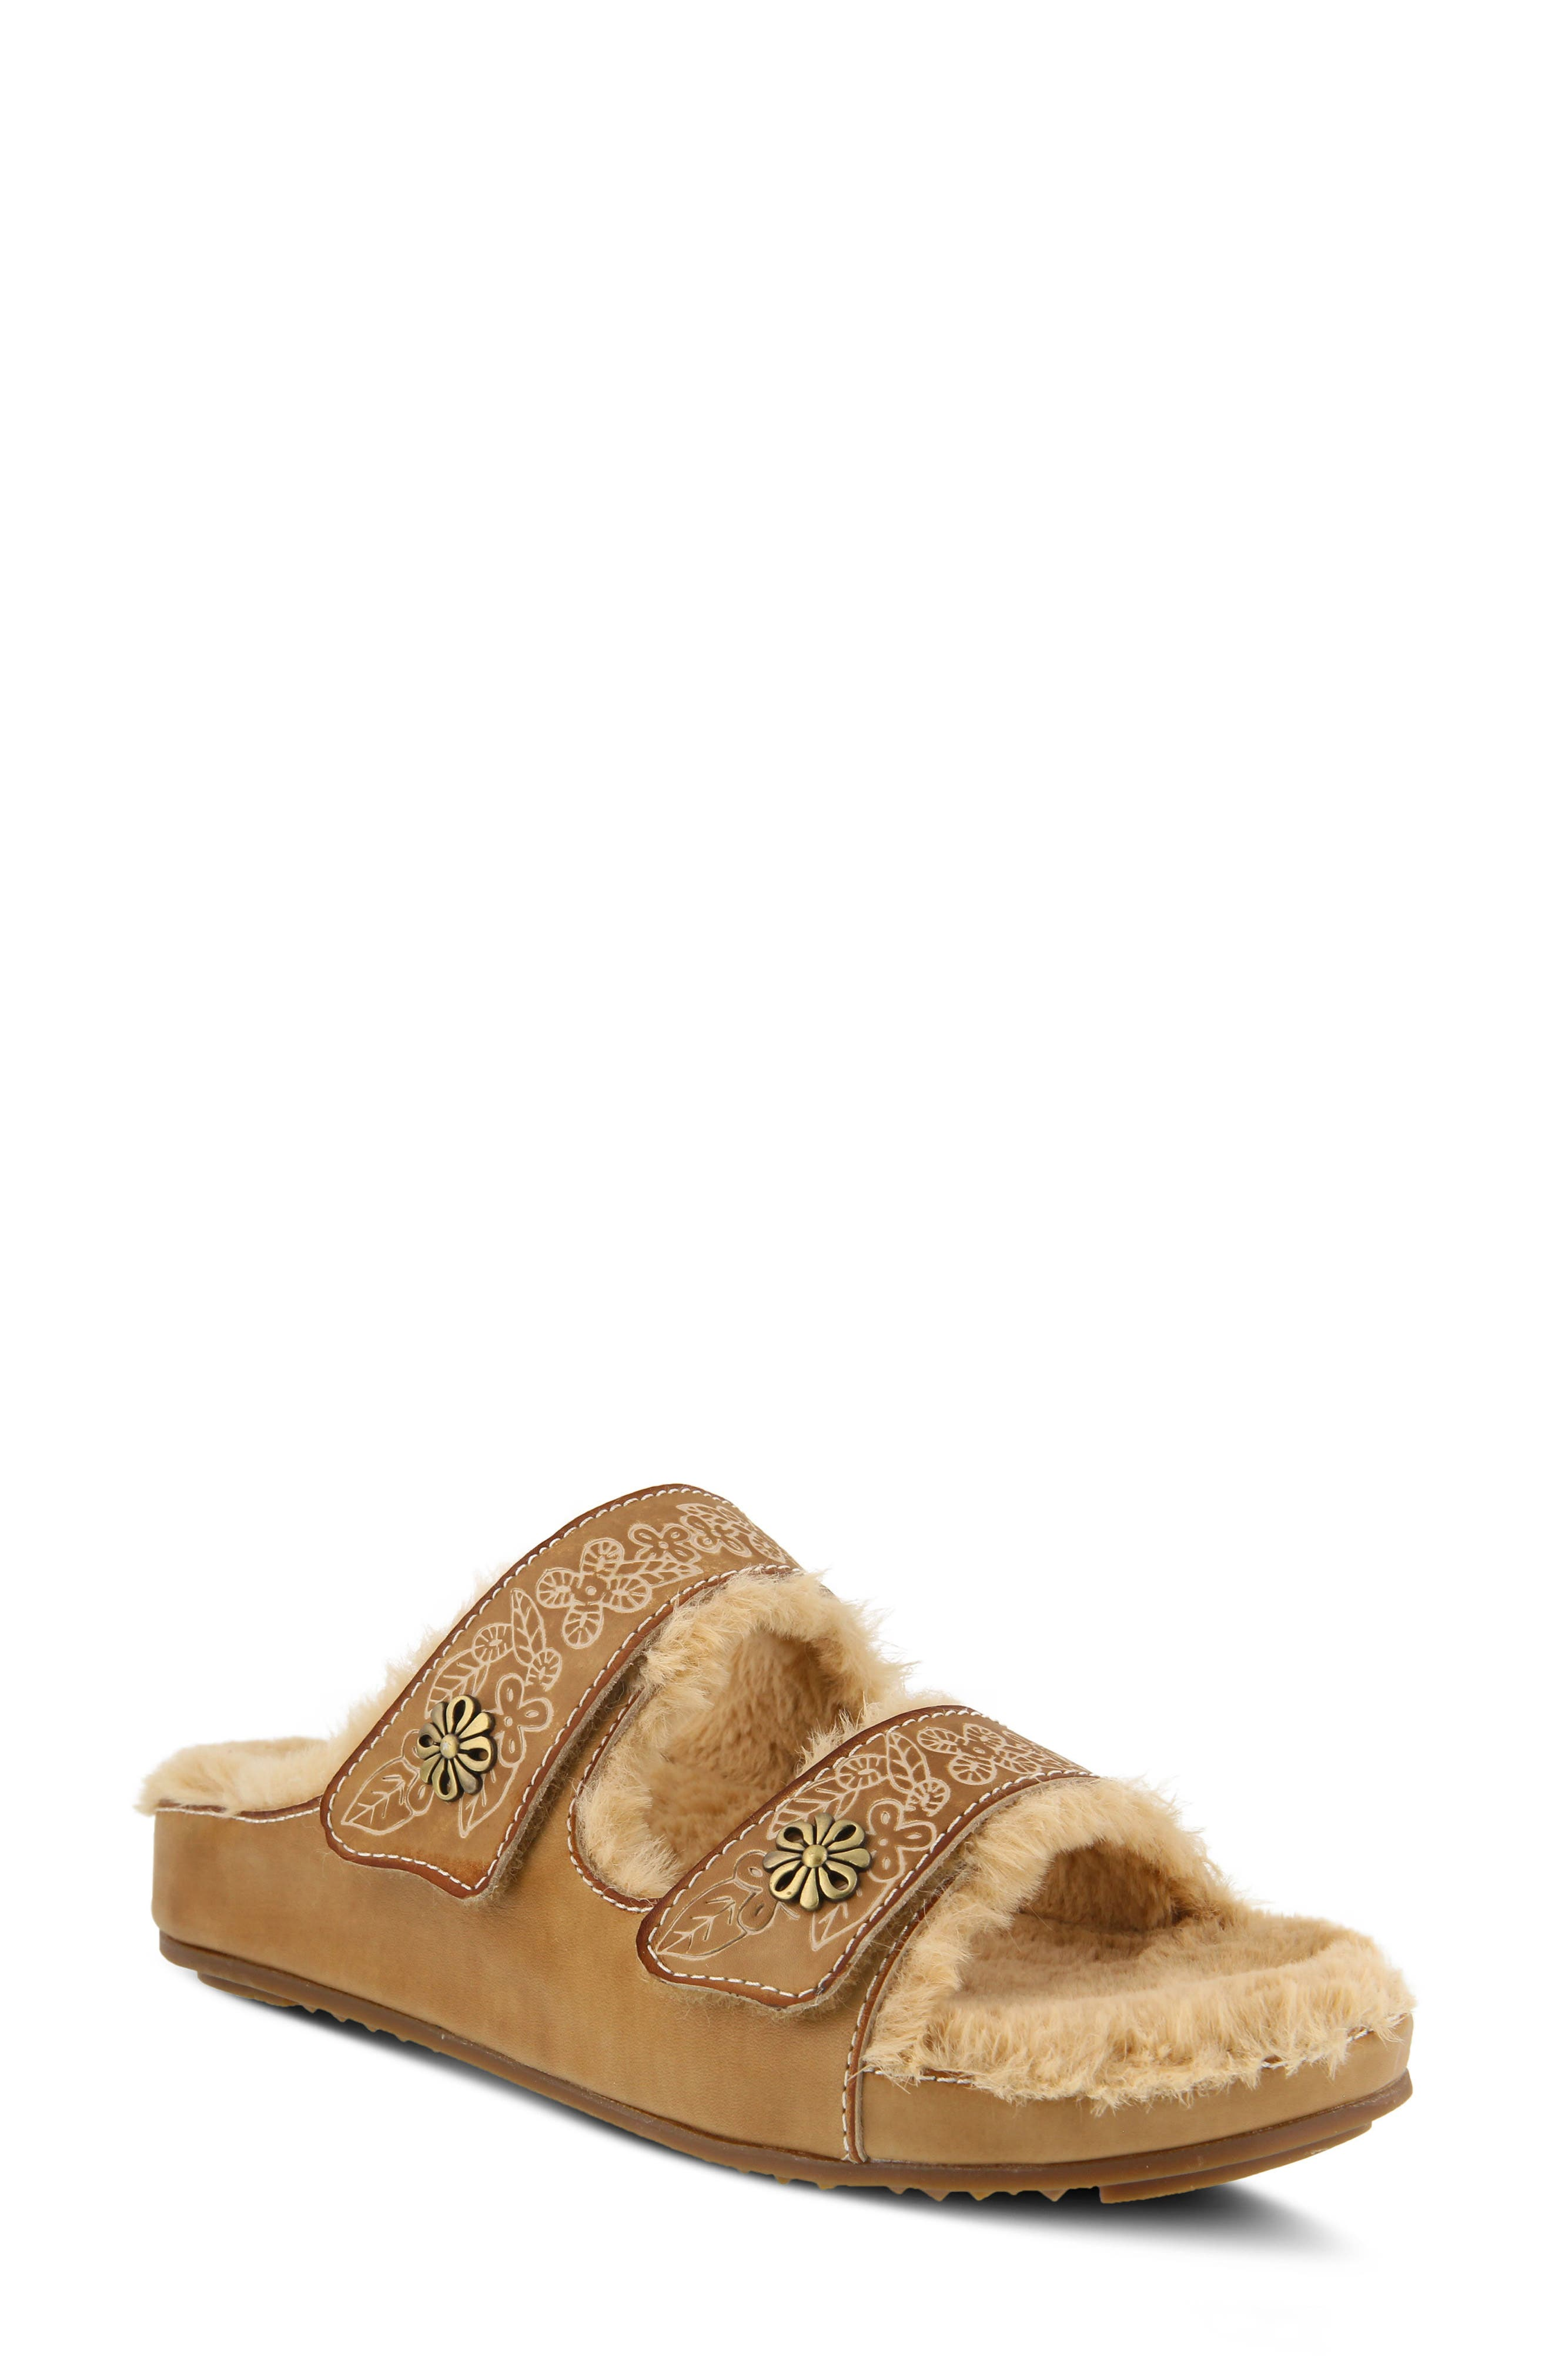 L'Artiste Furrie Sandal,                             Main thumbnail 1, color,                             Beige Leather